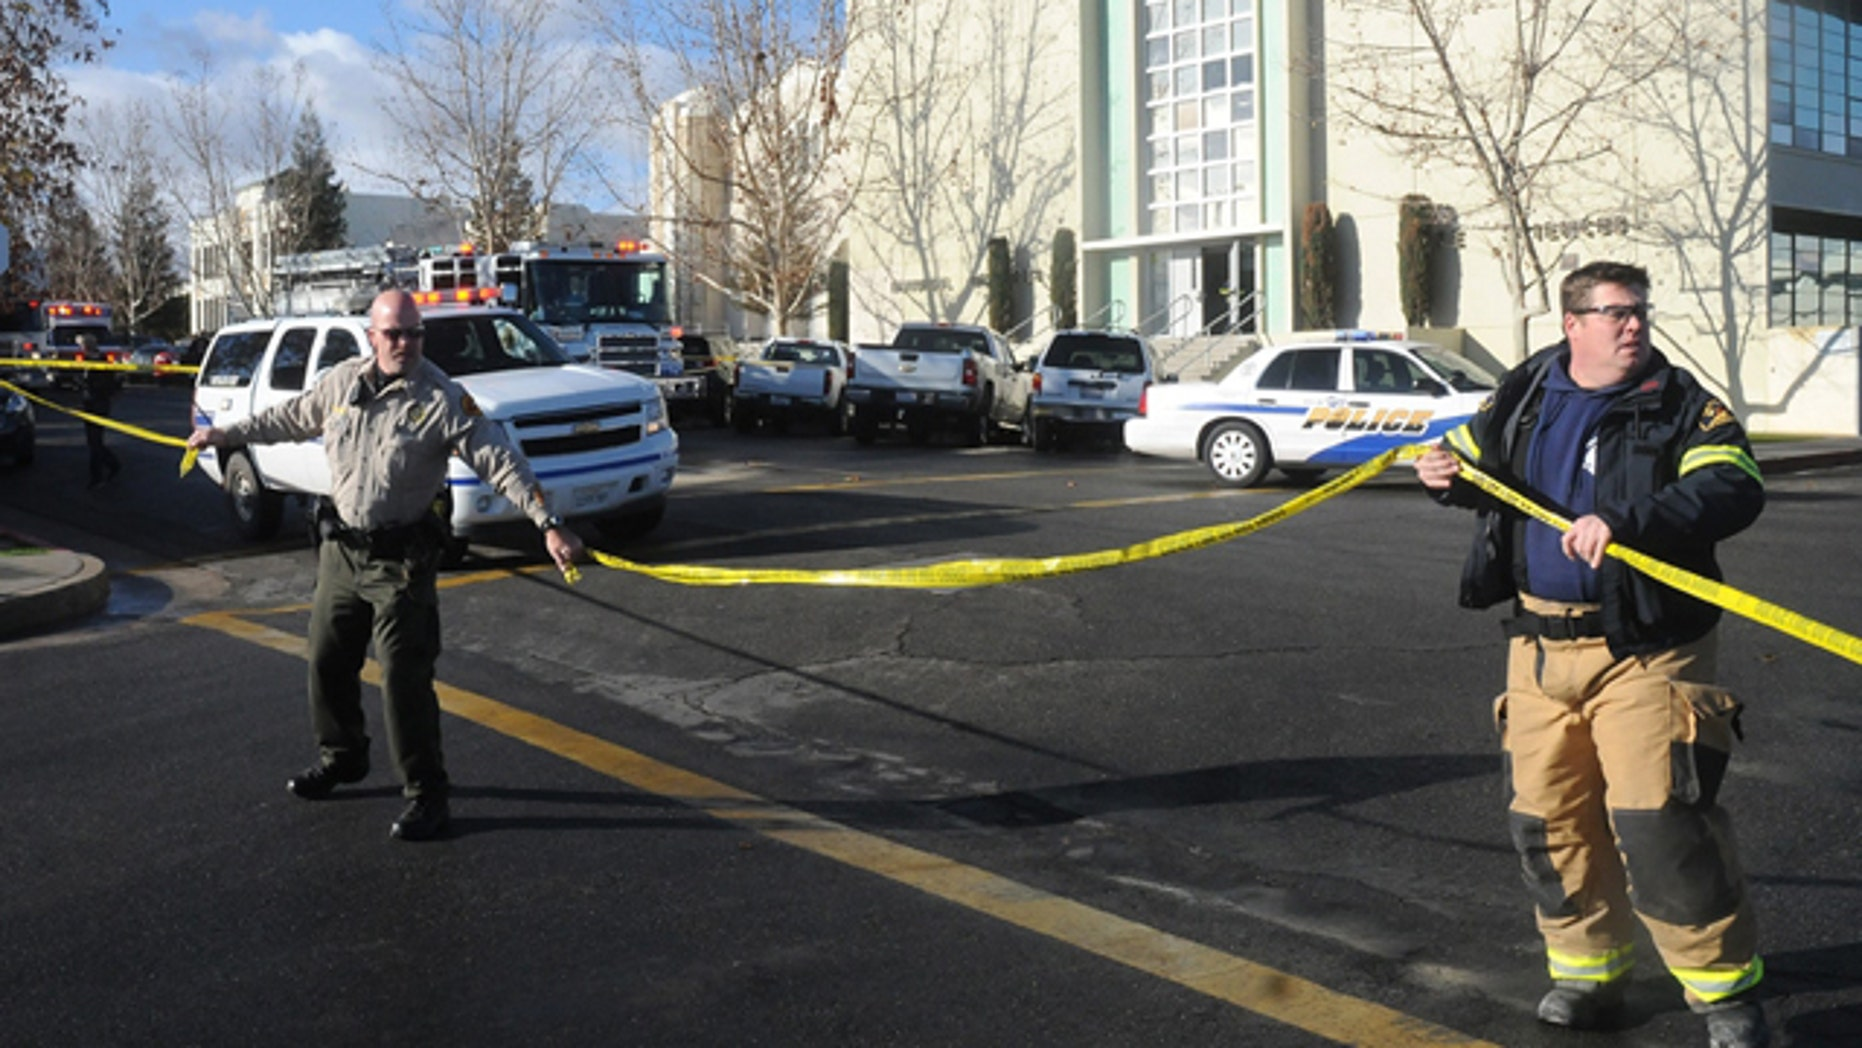 Jan. 10, 2013: This image shows officials taping off an area outside San Joaquin Valley high school in Taft, Calif.